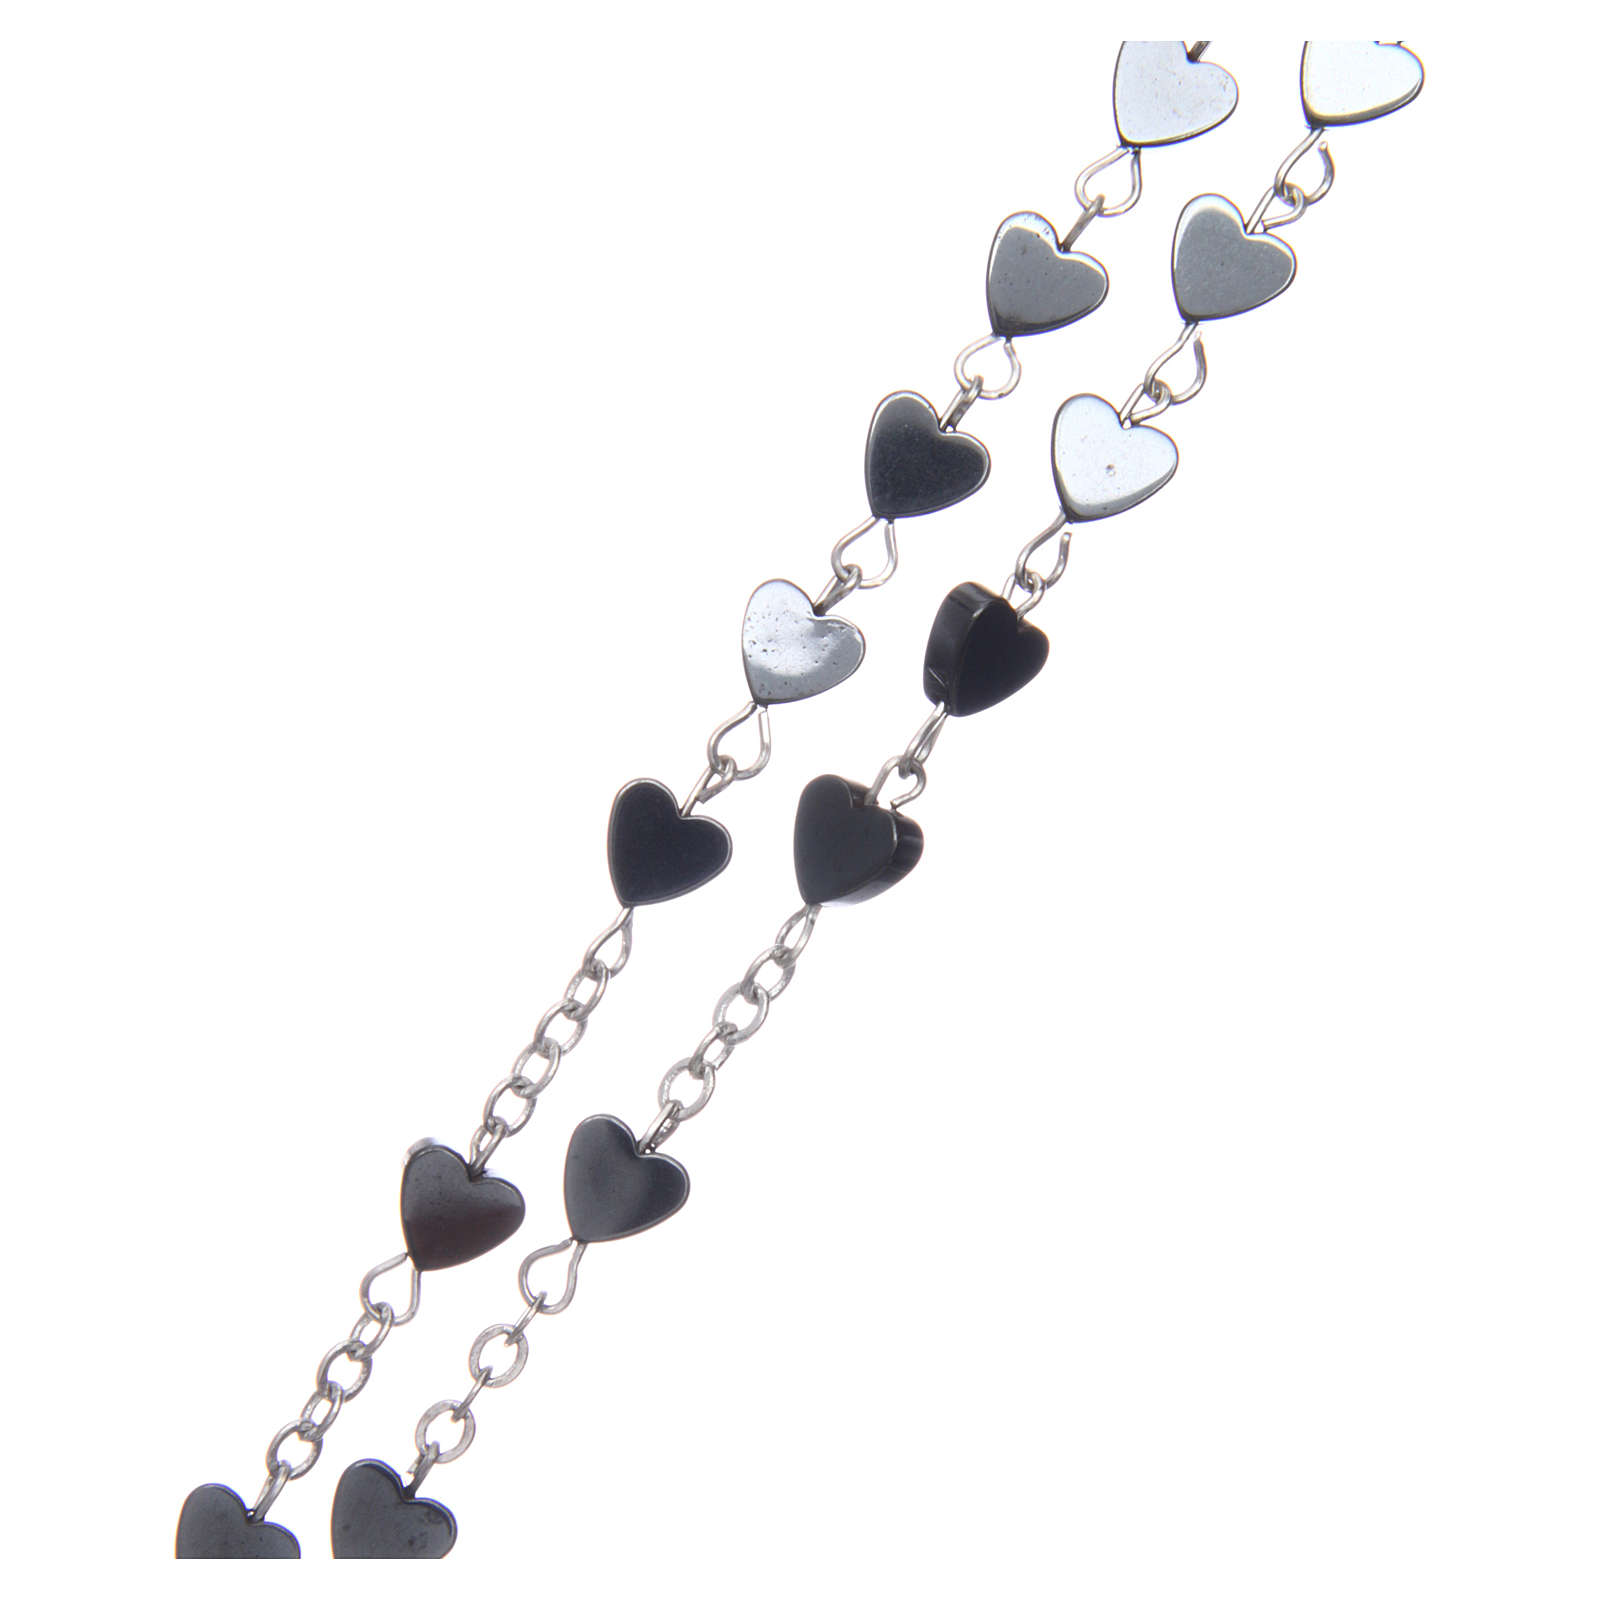 Heart-shaped hematite rosary 6 mm 4